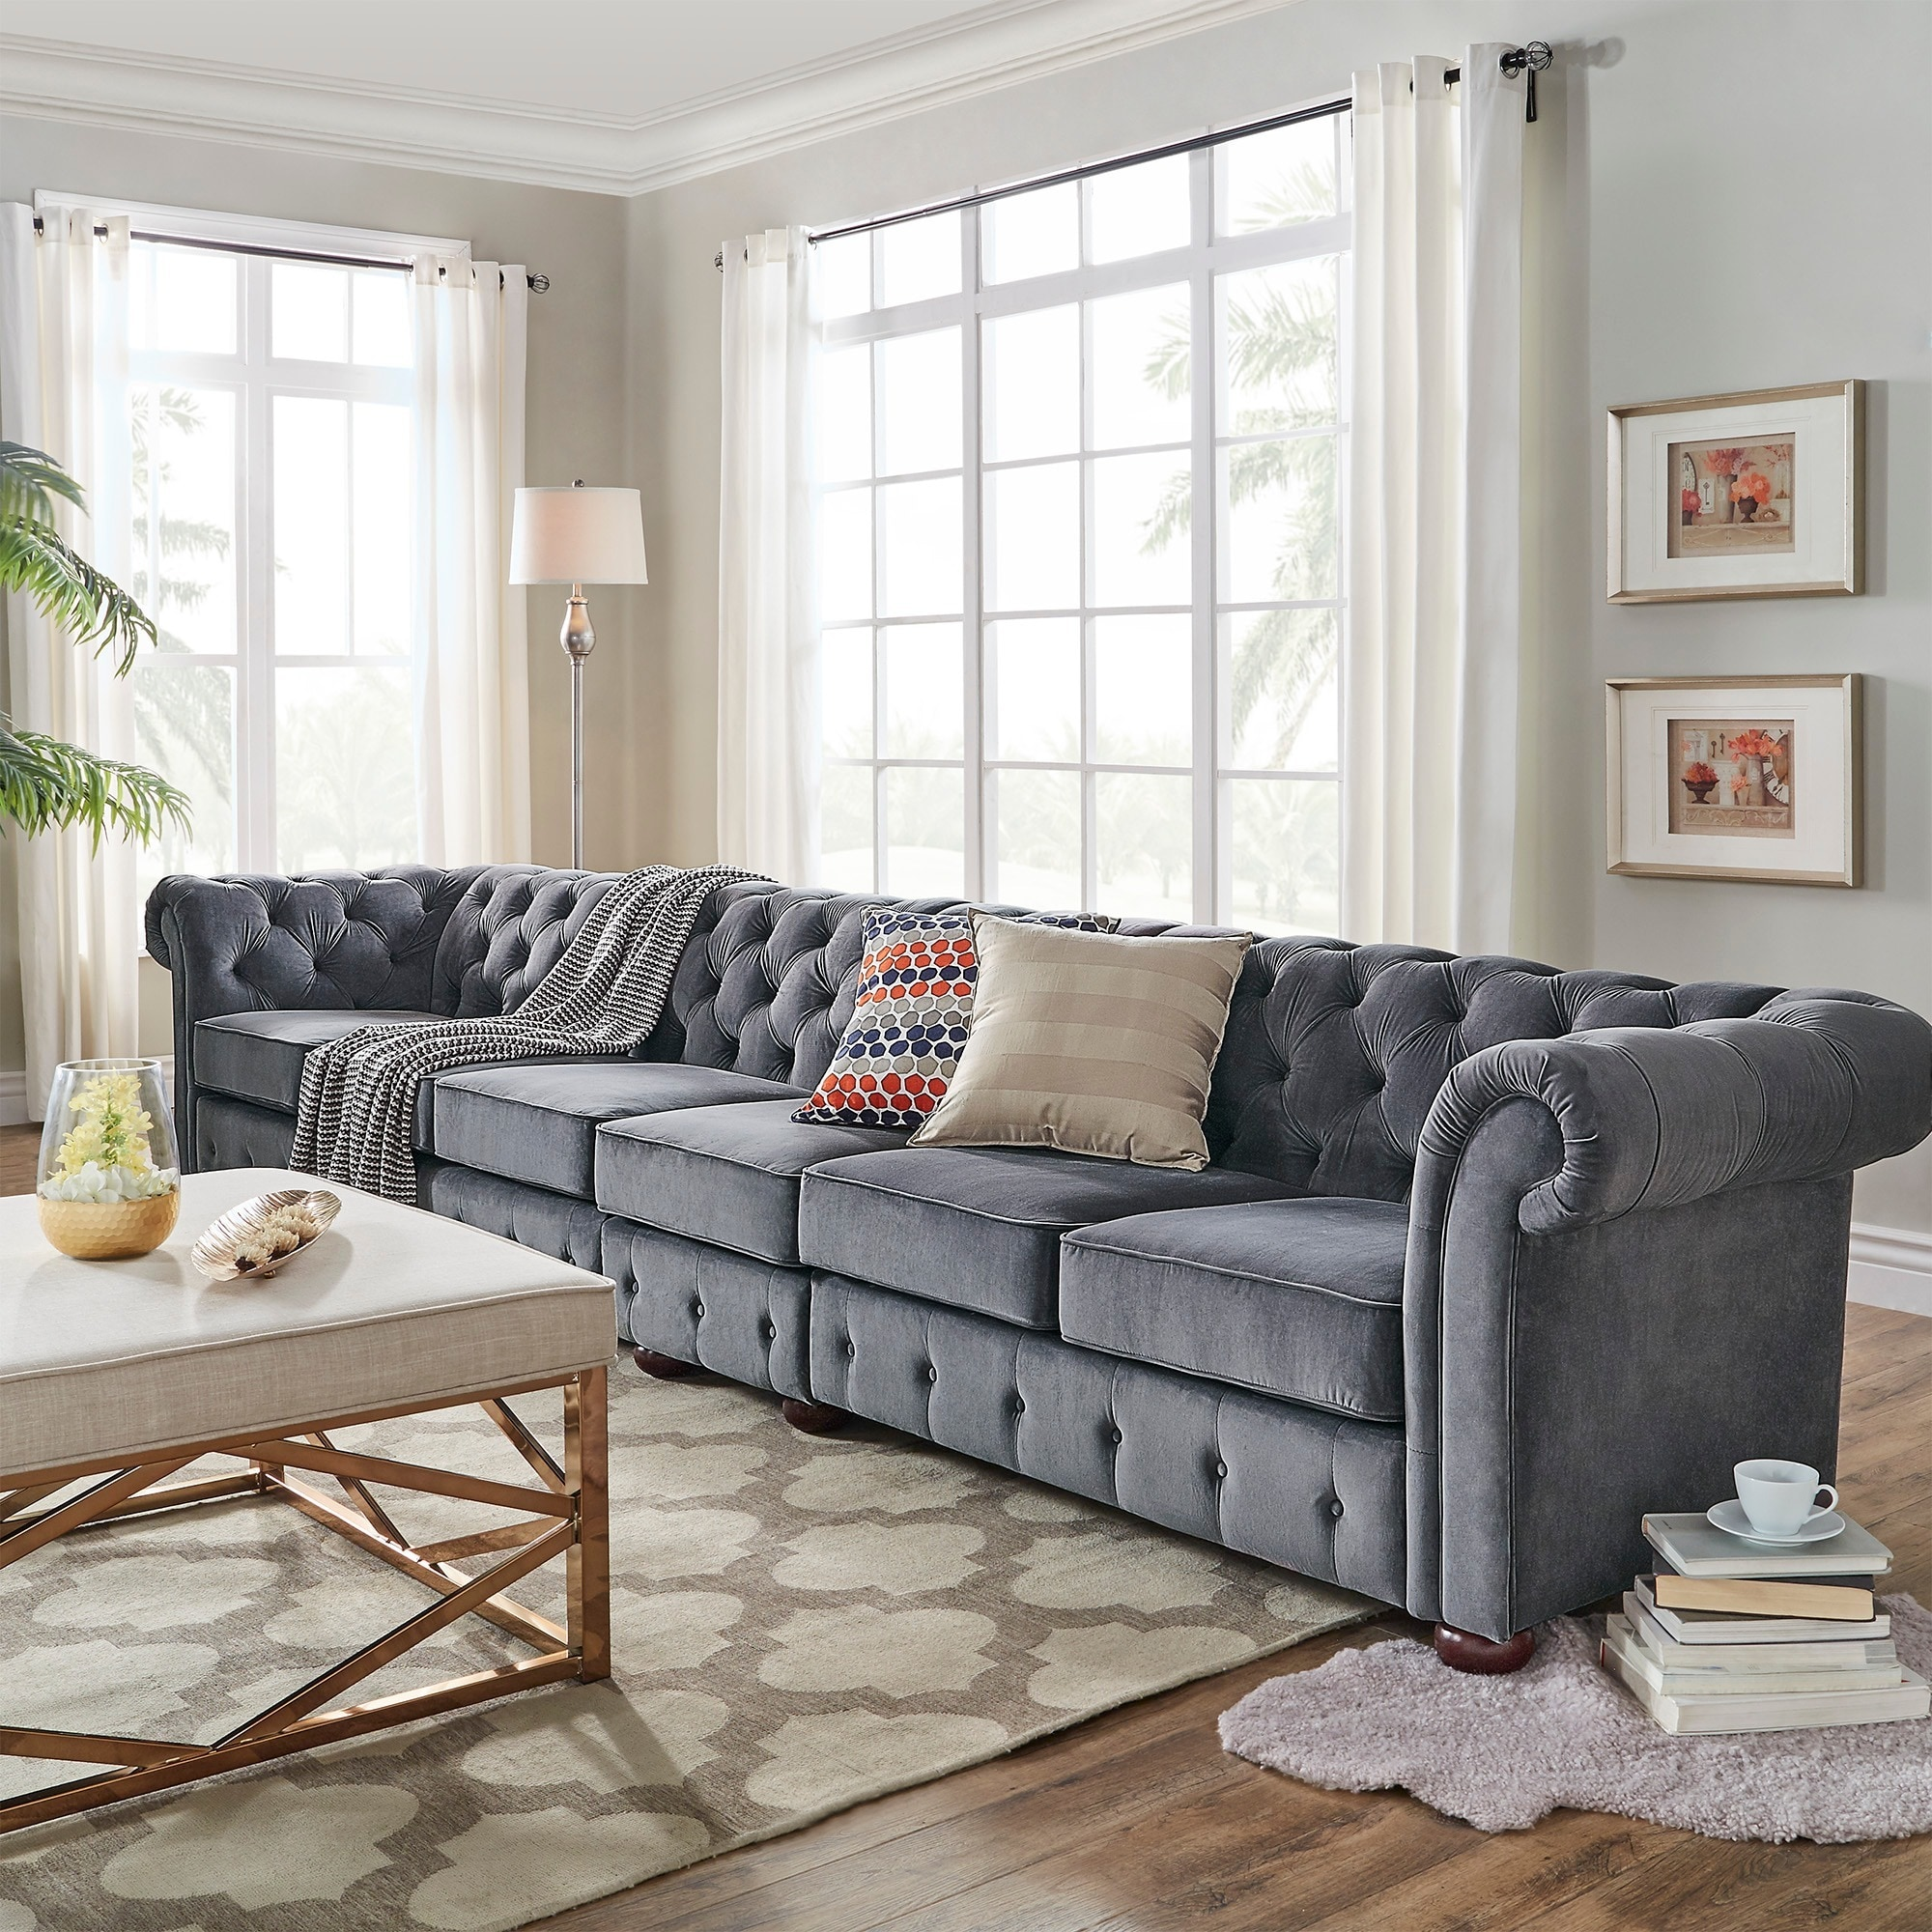 Stupendous Knightsbridge Dark Grey Extra Long Tufted Chesterfield Sofa By Inspire Q Artisan Alphanode Cool Chair Designs And Ideas Alphanodeonline